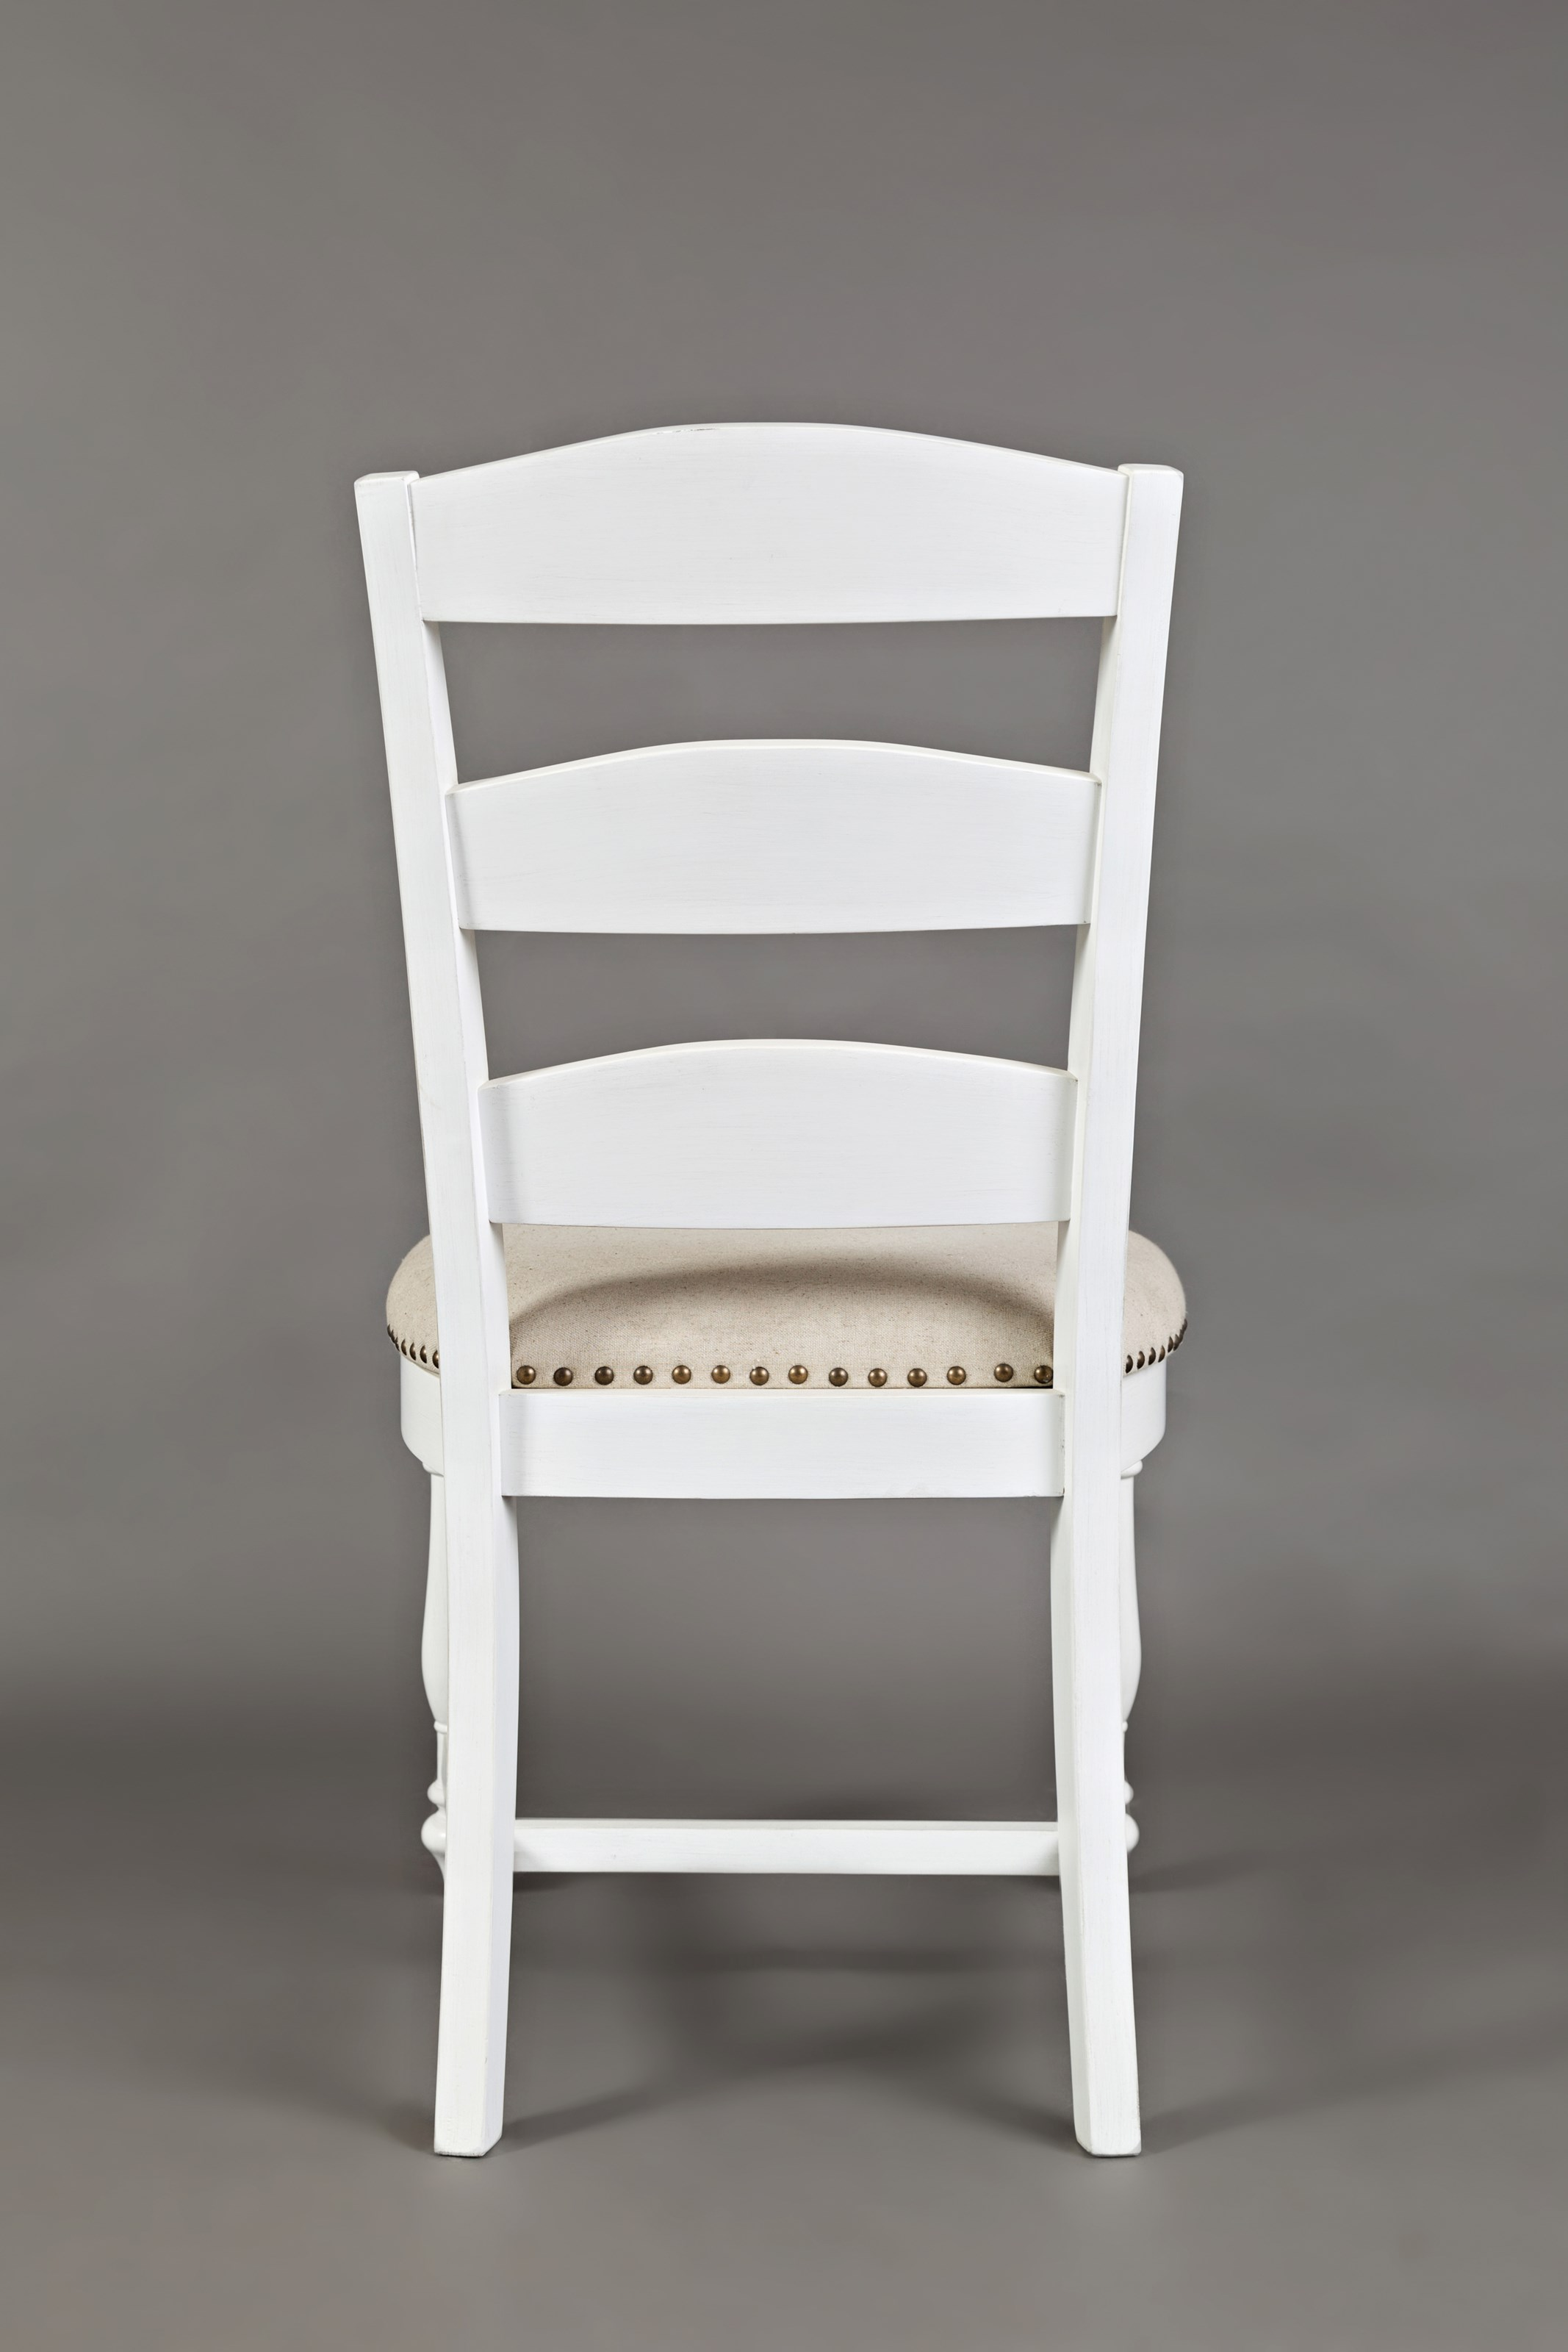 White Ladder Back Chair Jofran Acropolis White Ladder Back Dining Chair Rotmans